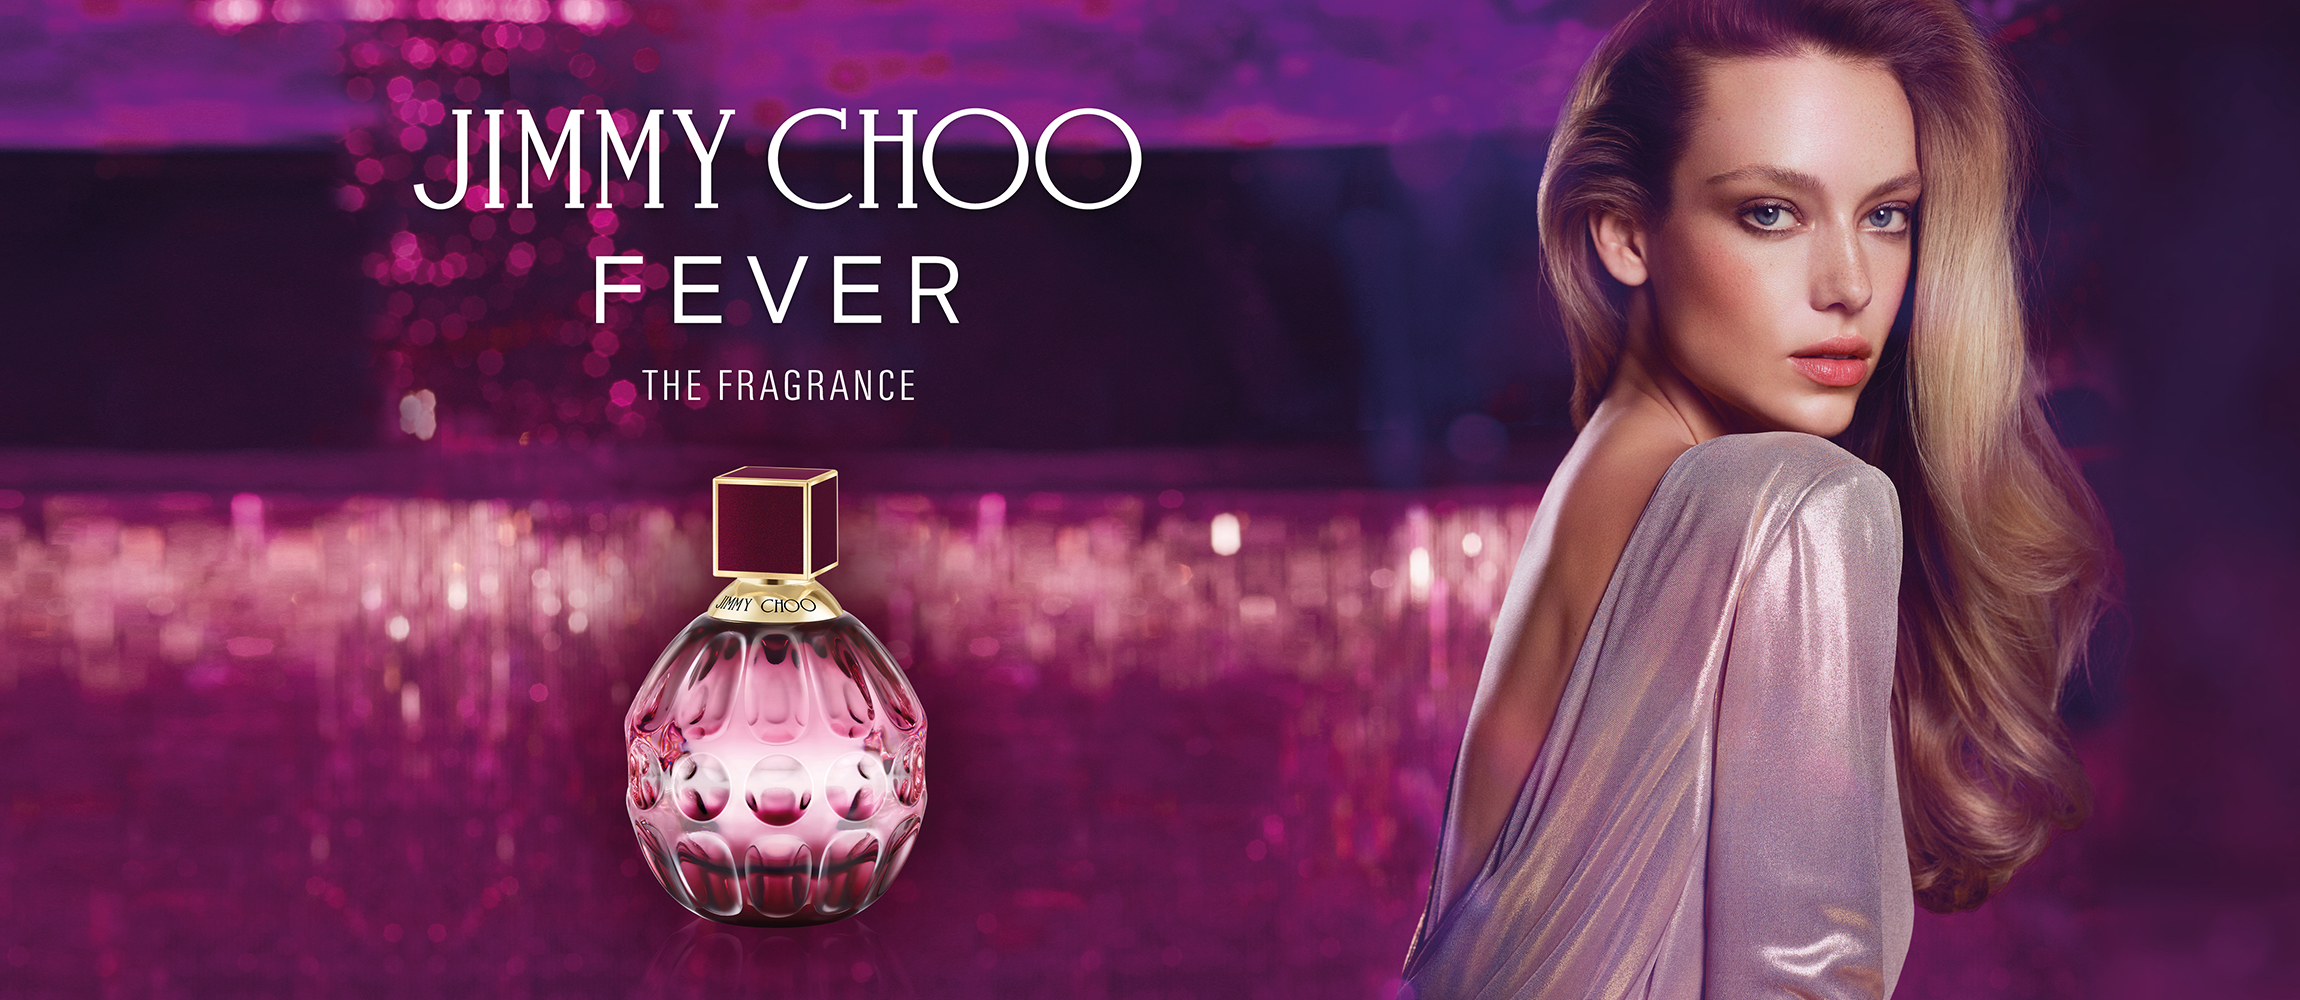 Jimmy Choo, Fever, parfume